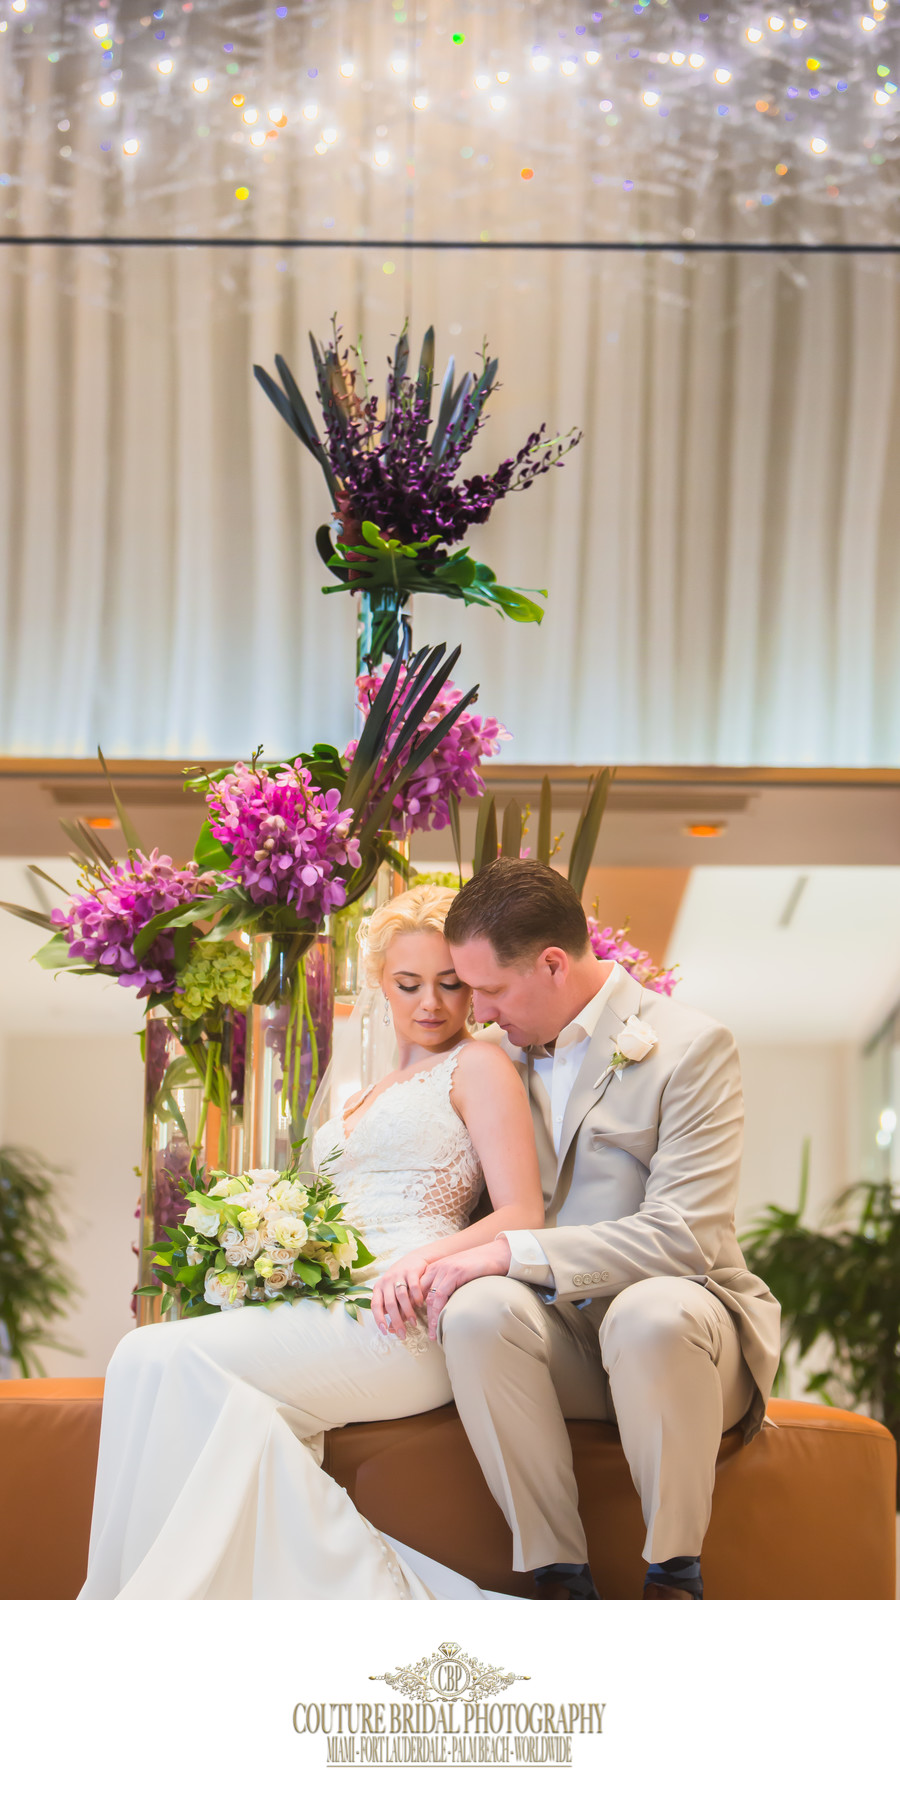 WEDDING PHOTOGRAPHY COST IN FORT LAUDERDALE